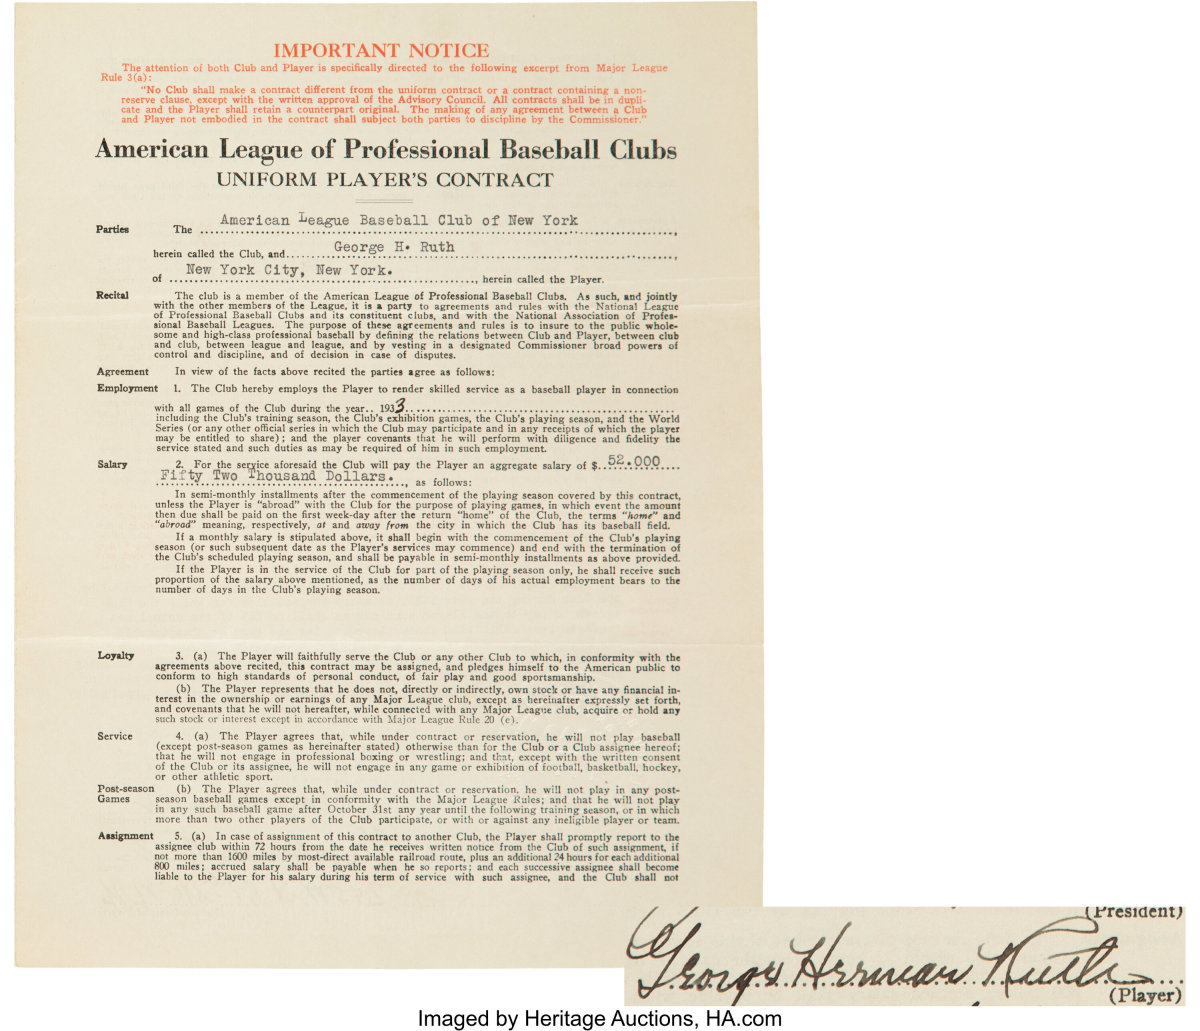 1933_Babe_Ruth-Signed_New_York_Yankees_Player's_Contract_Heritage_Auctions